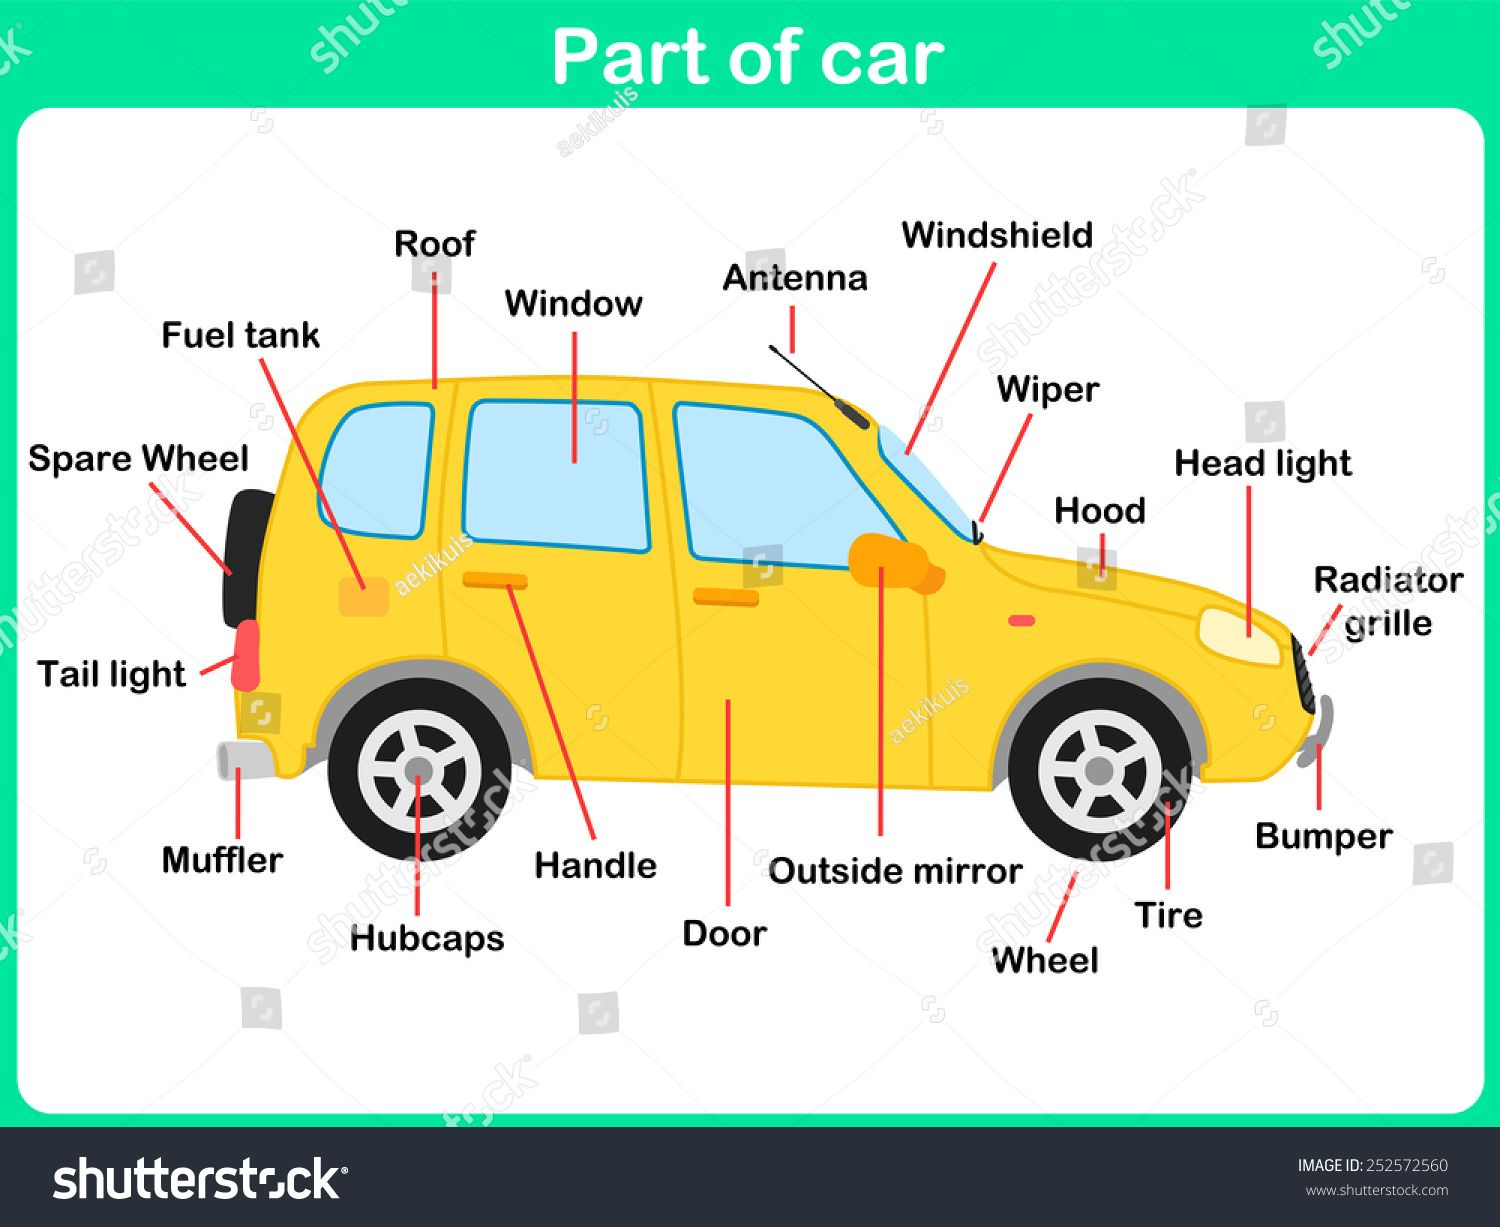 Leaning Parts Of Car For Kids